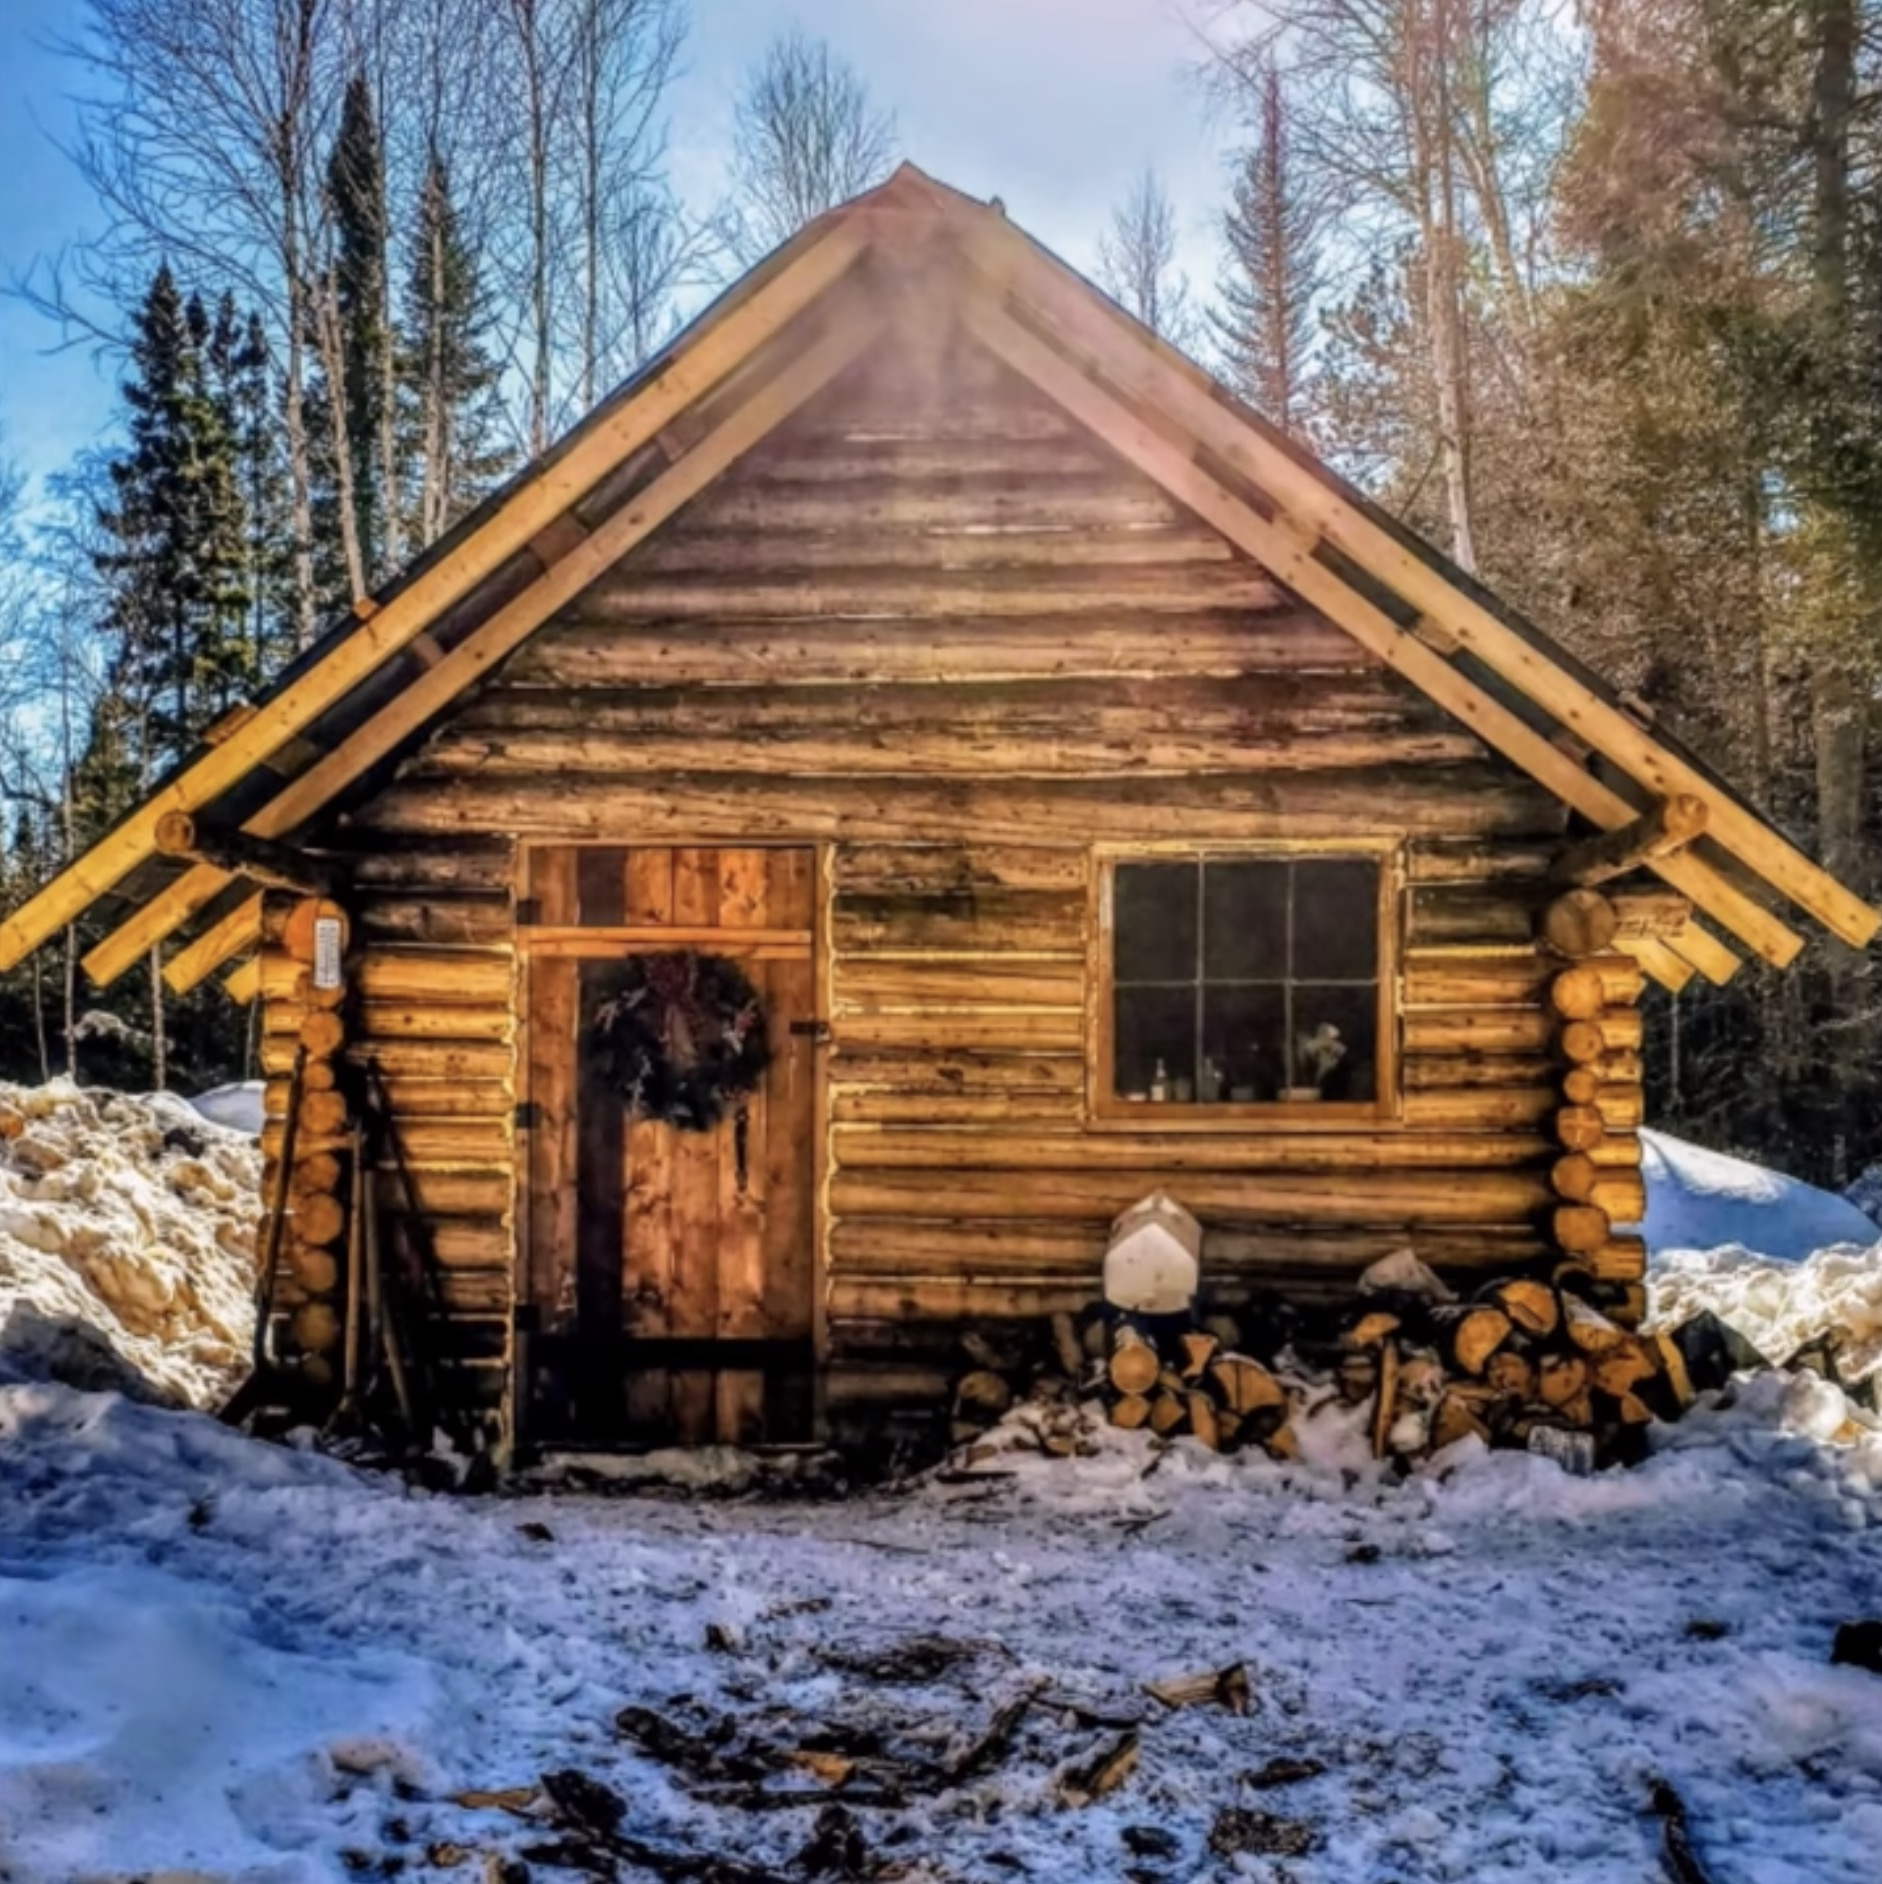 Mortgage Free At 24 Years Old Minnesota Off Grid Cabin Living Unofficial Networks